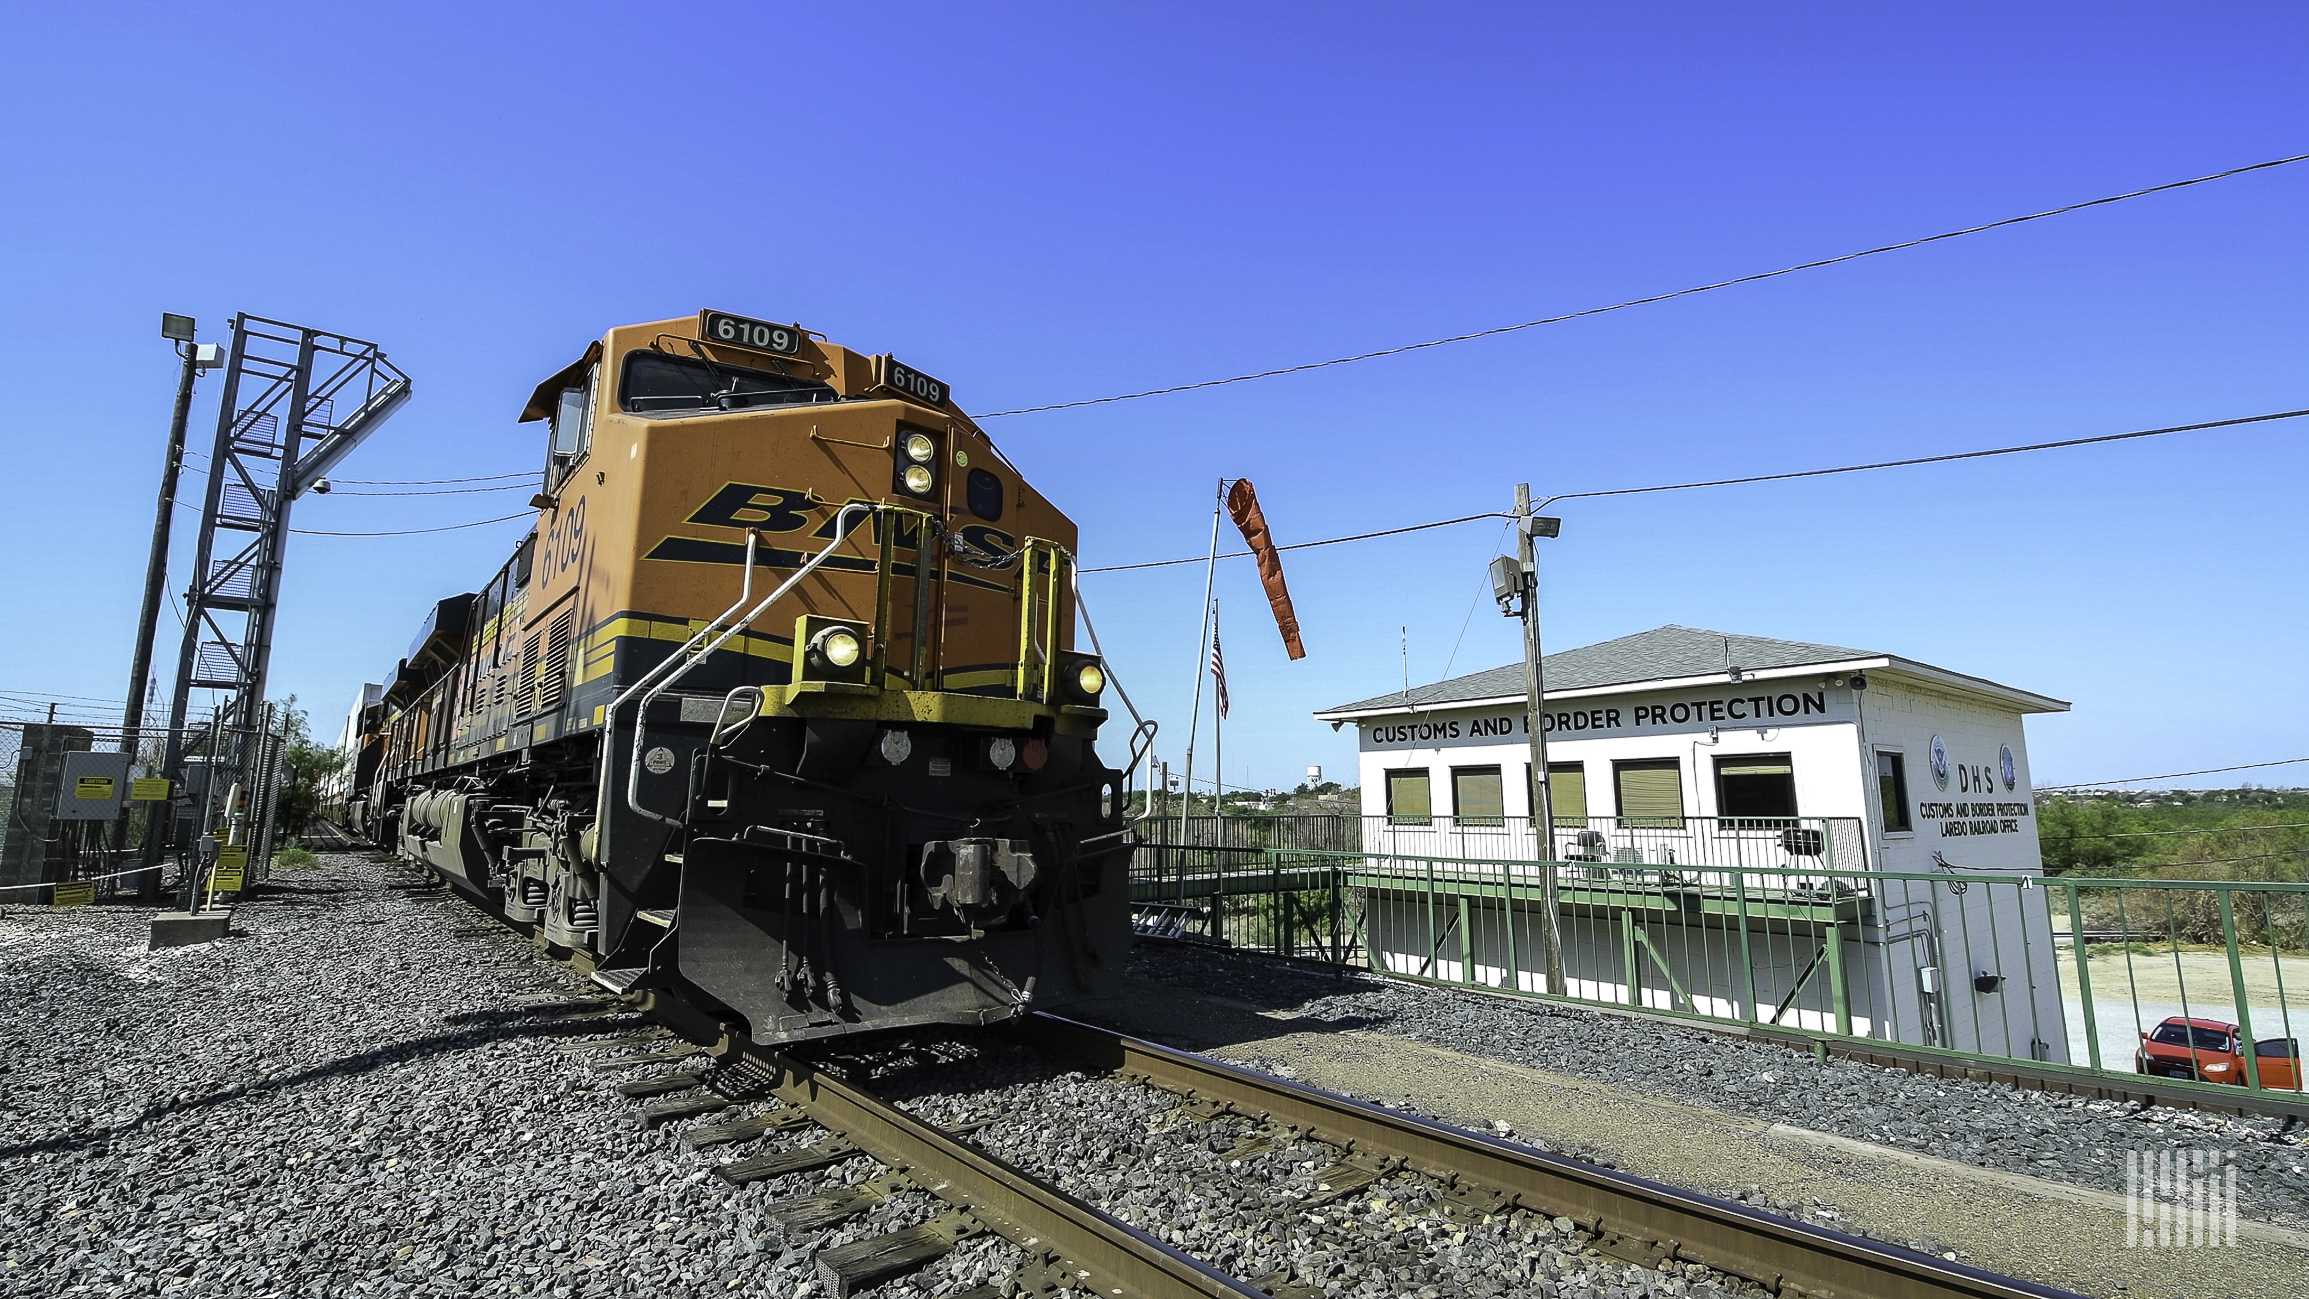 A photograph of a train by a CBP outpost.